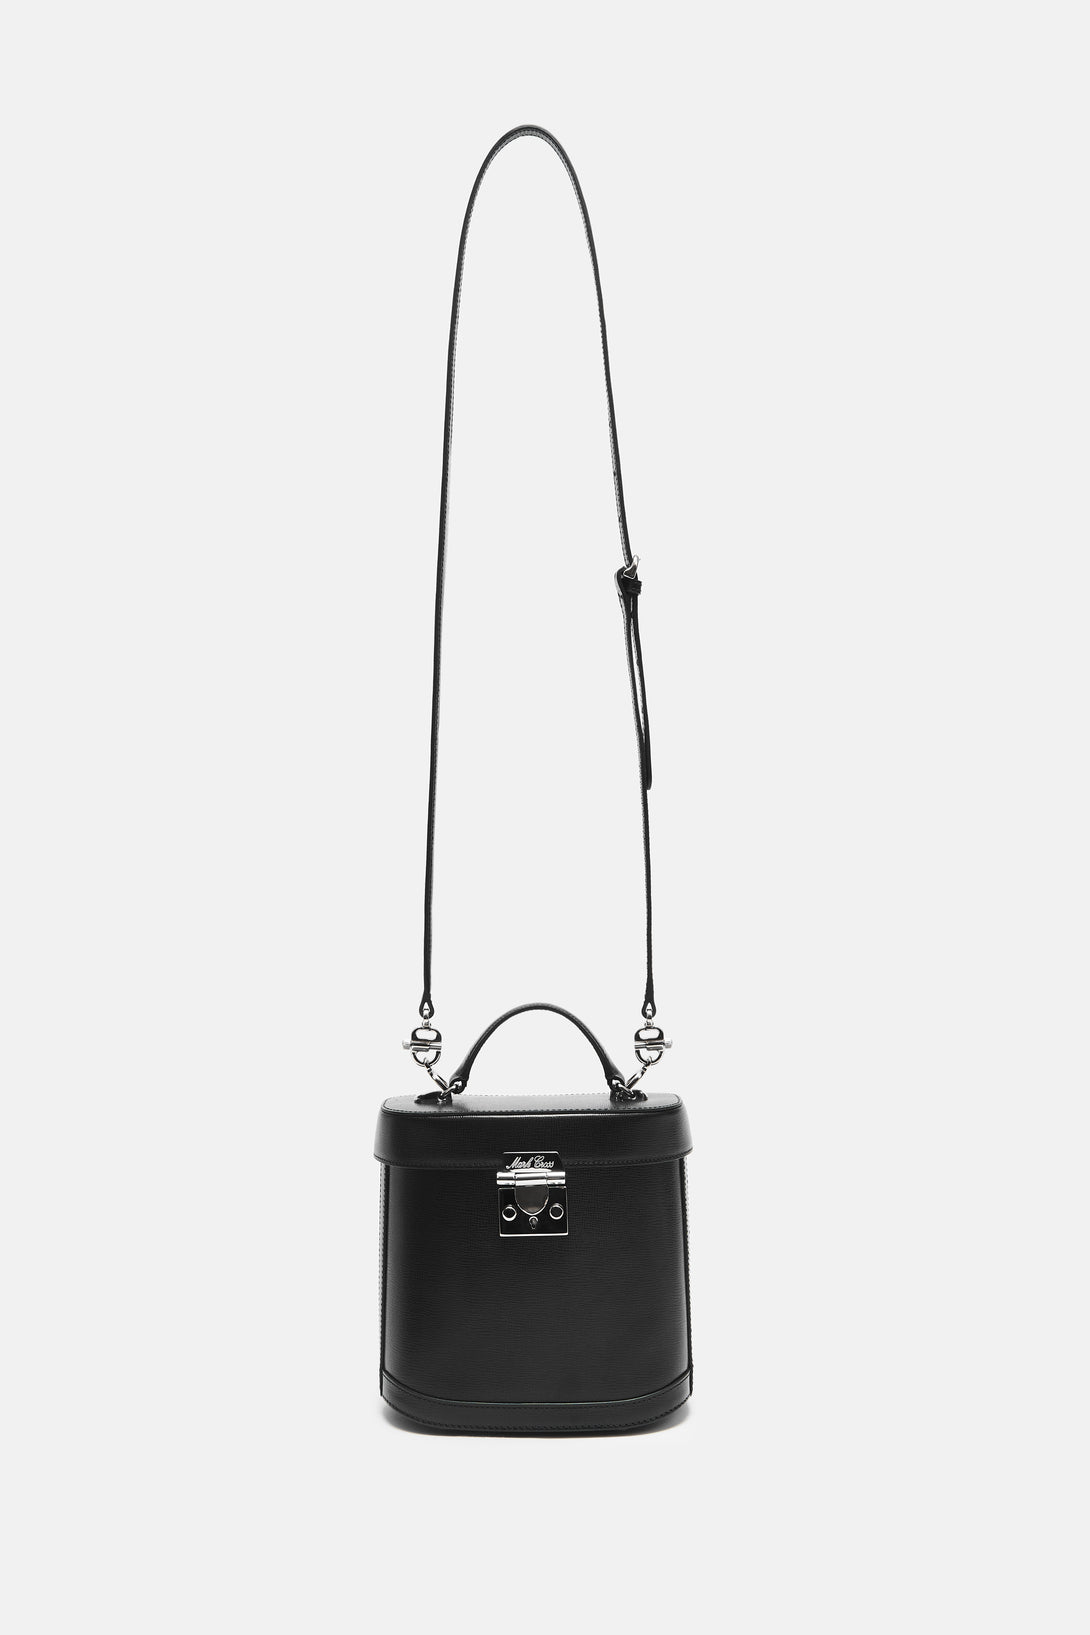 Benchley Bag - Black Saffiano